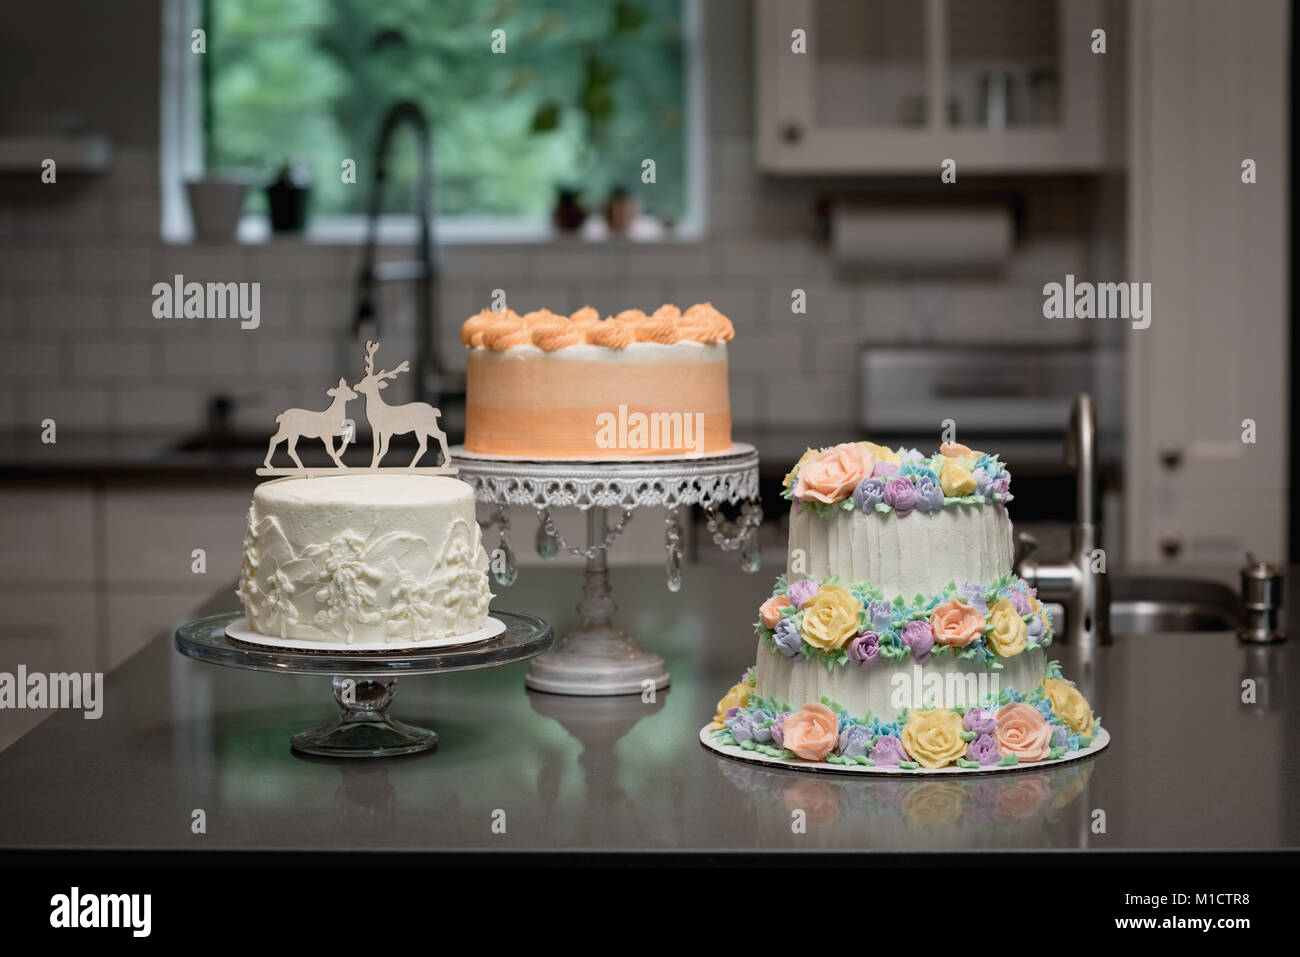 Various decorated cake in bakery - Stock Image